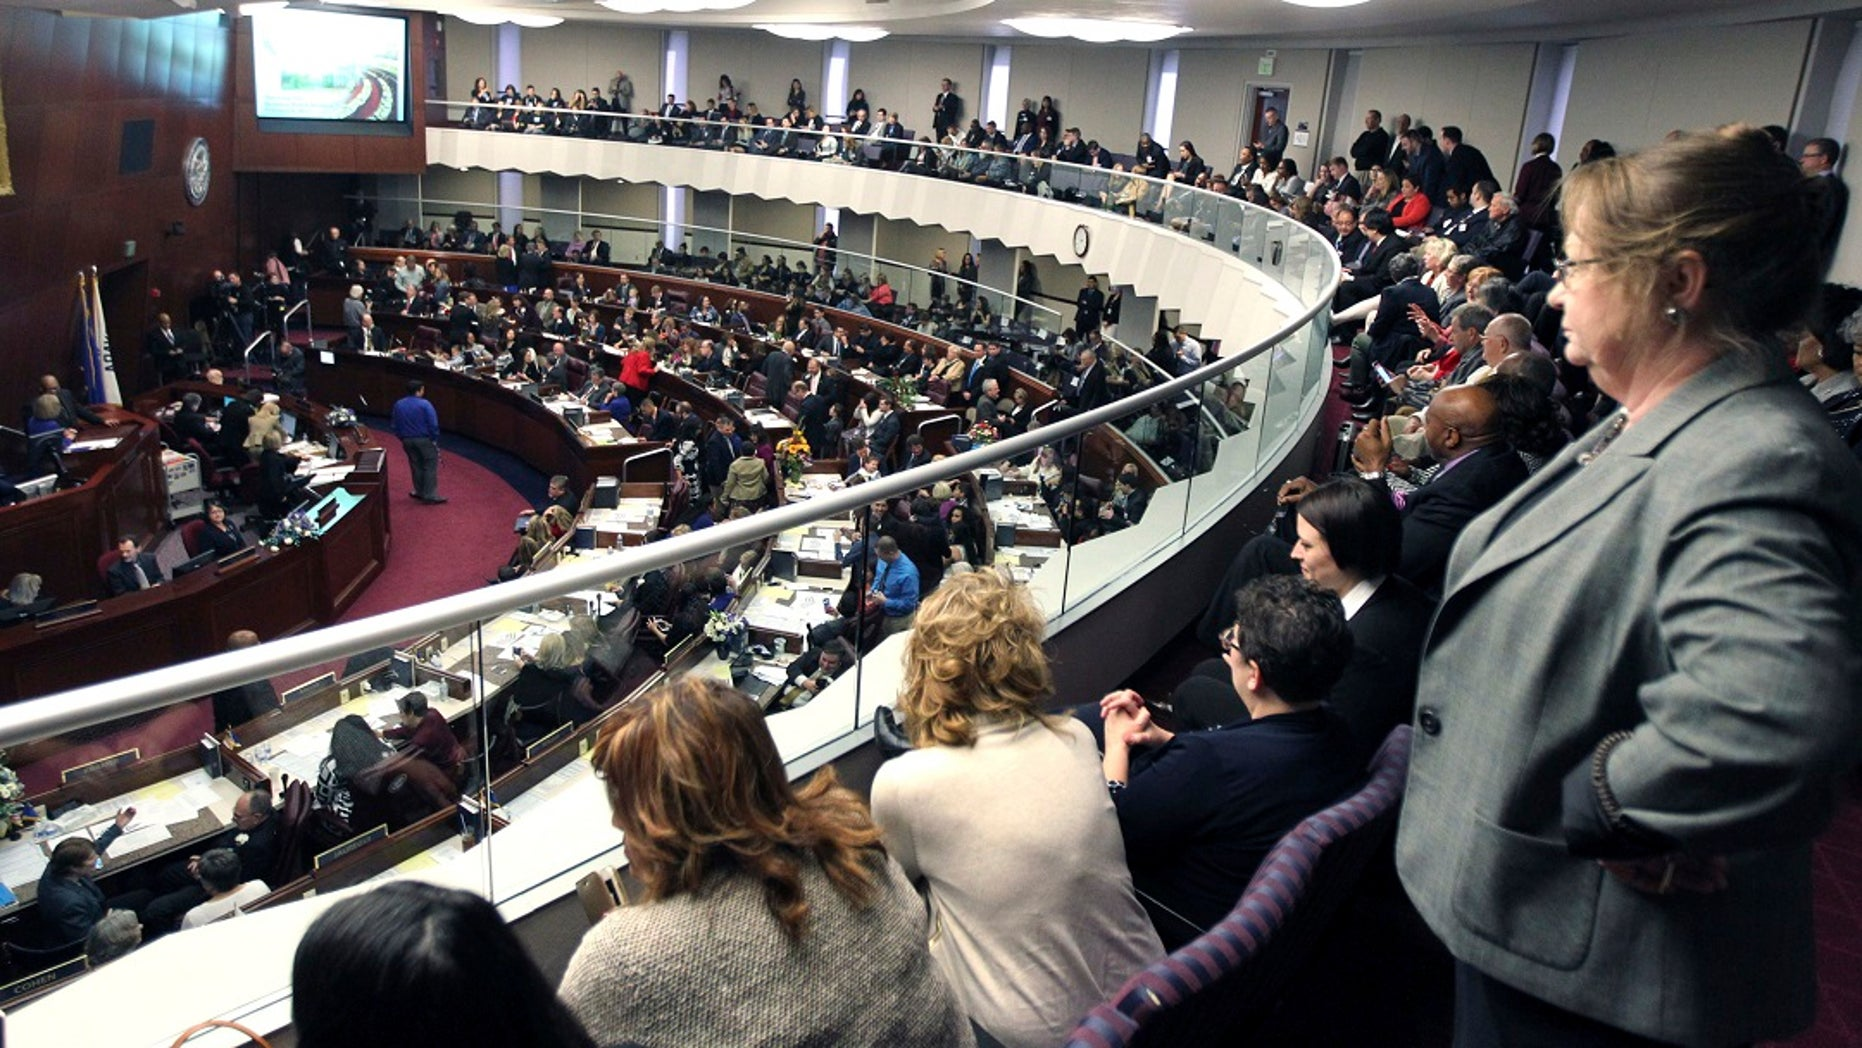 Spectators watch the Nevada State Assembly on the opening day of the Legislative Session in Carson City, Nev. (Associated Press)